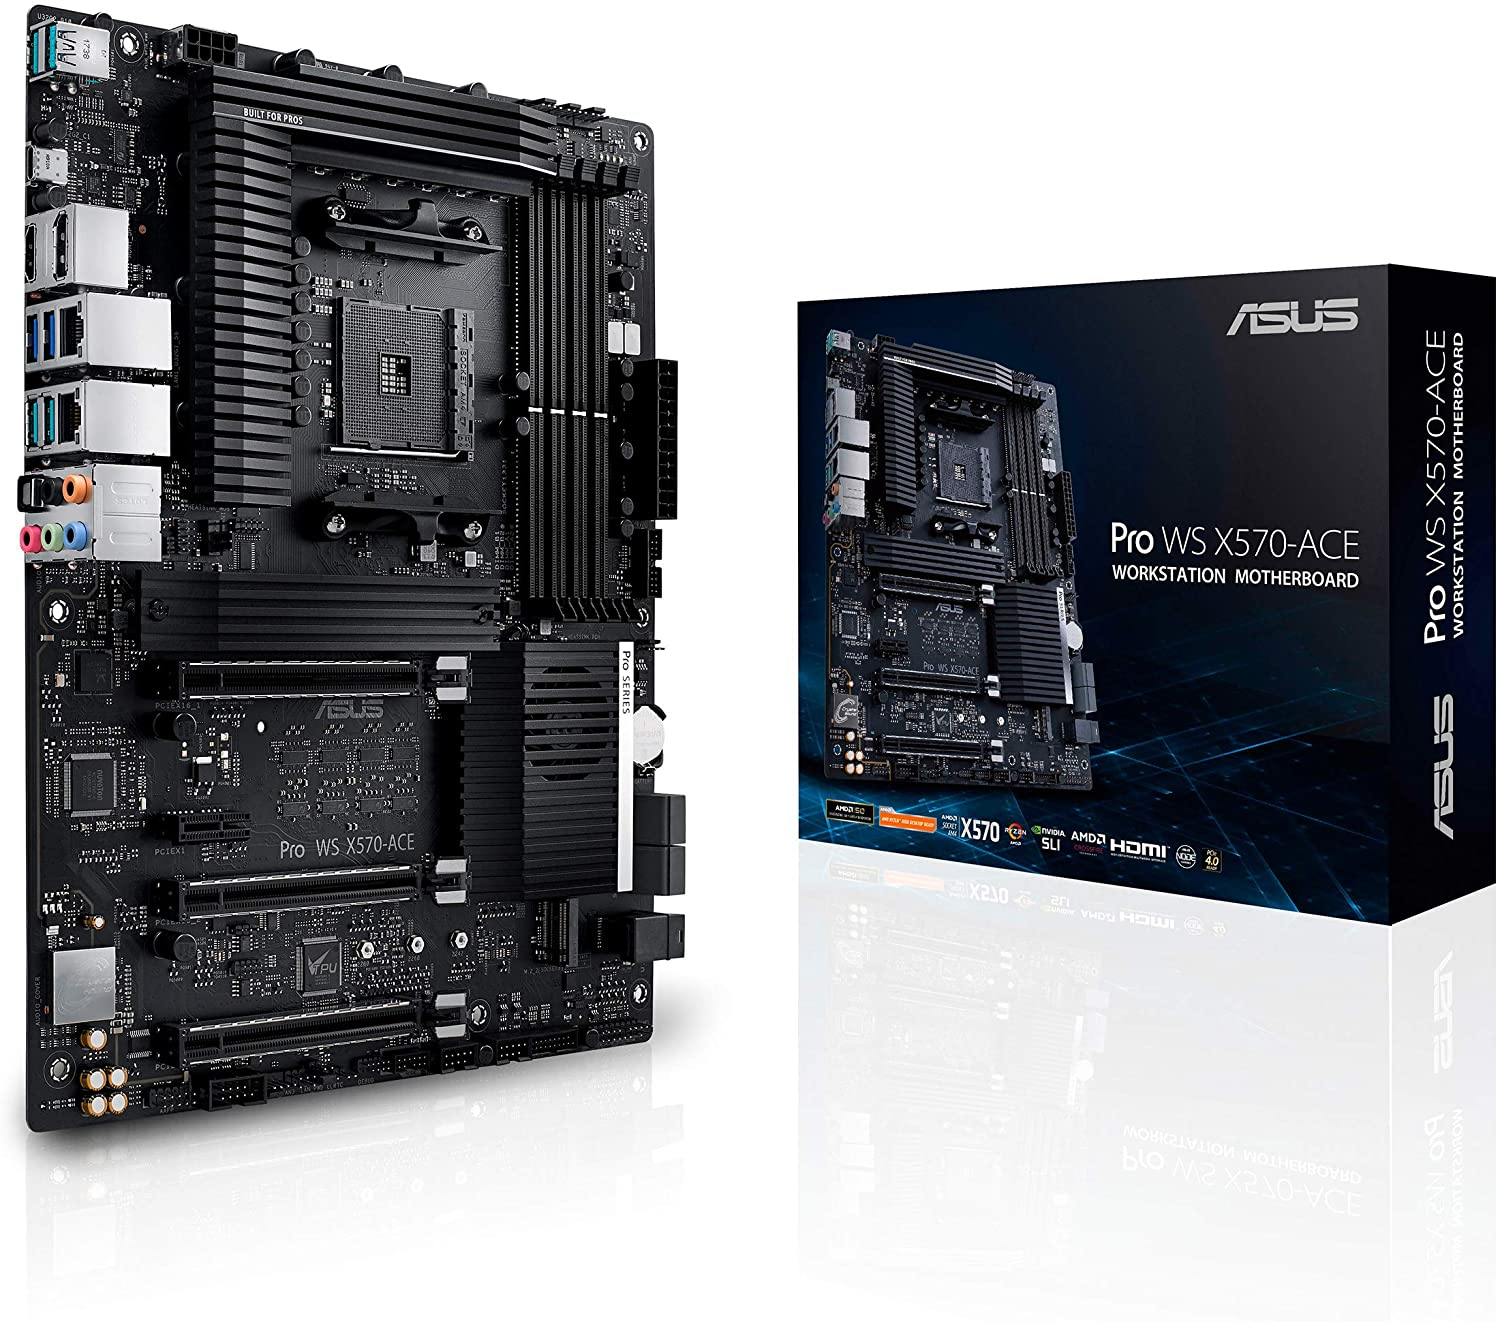 ASUS AMD AM4 Pro WS X570-Ace ATX Workstation Motherboard with 3 PCIe 4.0 X16, Dual Realtek and Intel Gigabit LAN, DDR4 ECC Memory Support, Dual M.2, U.2, and Control Center